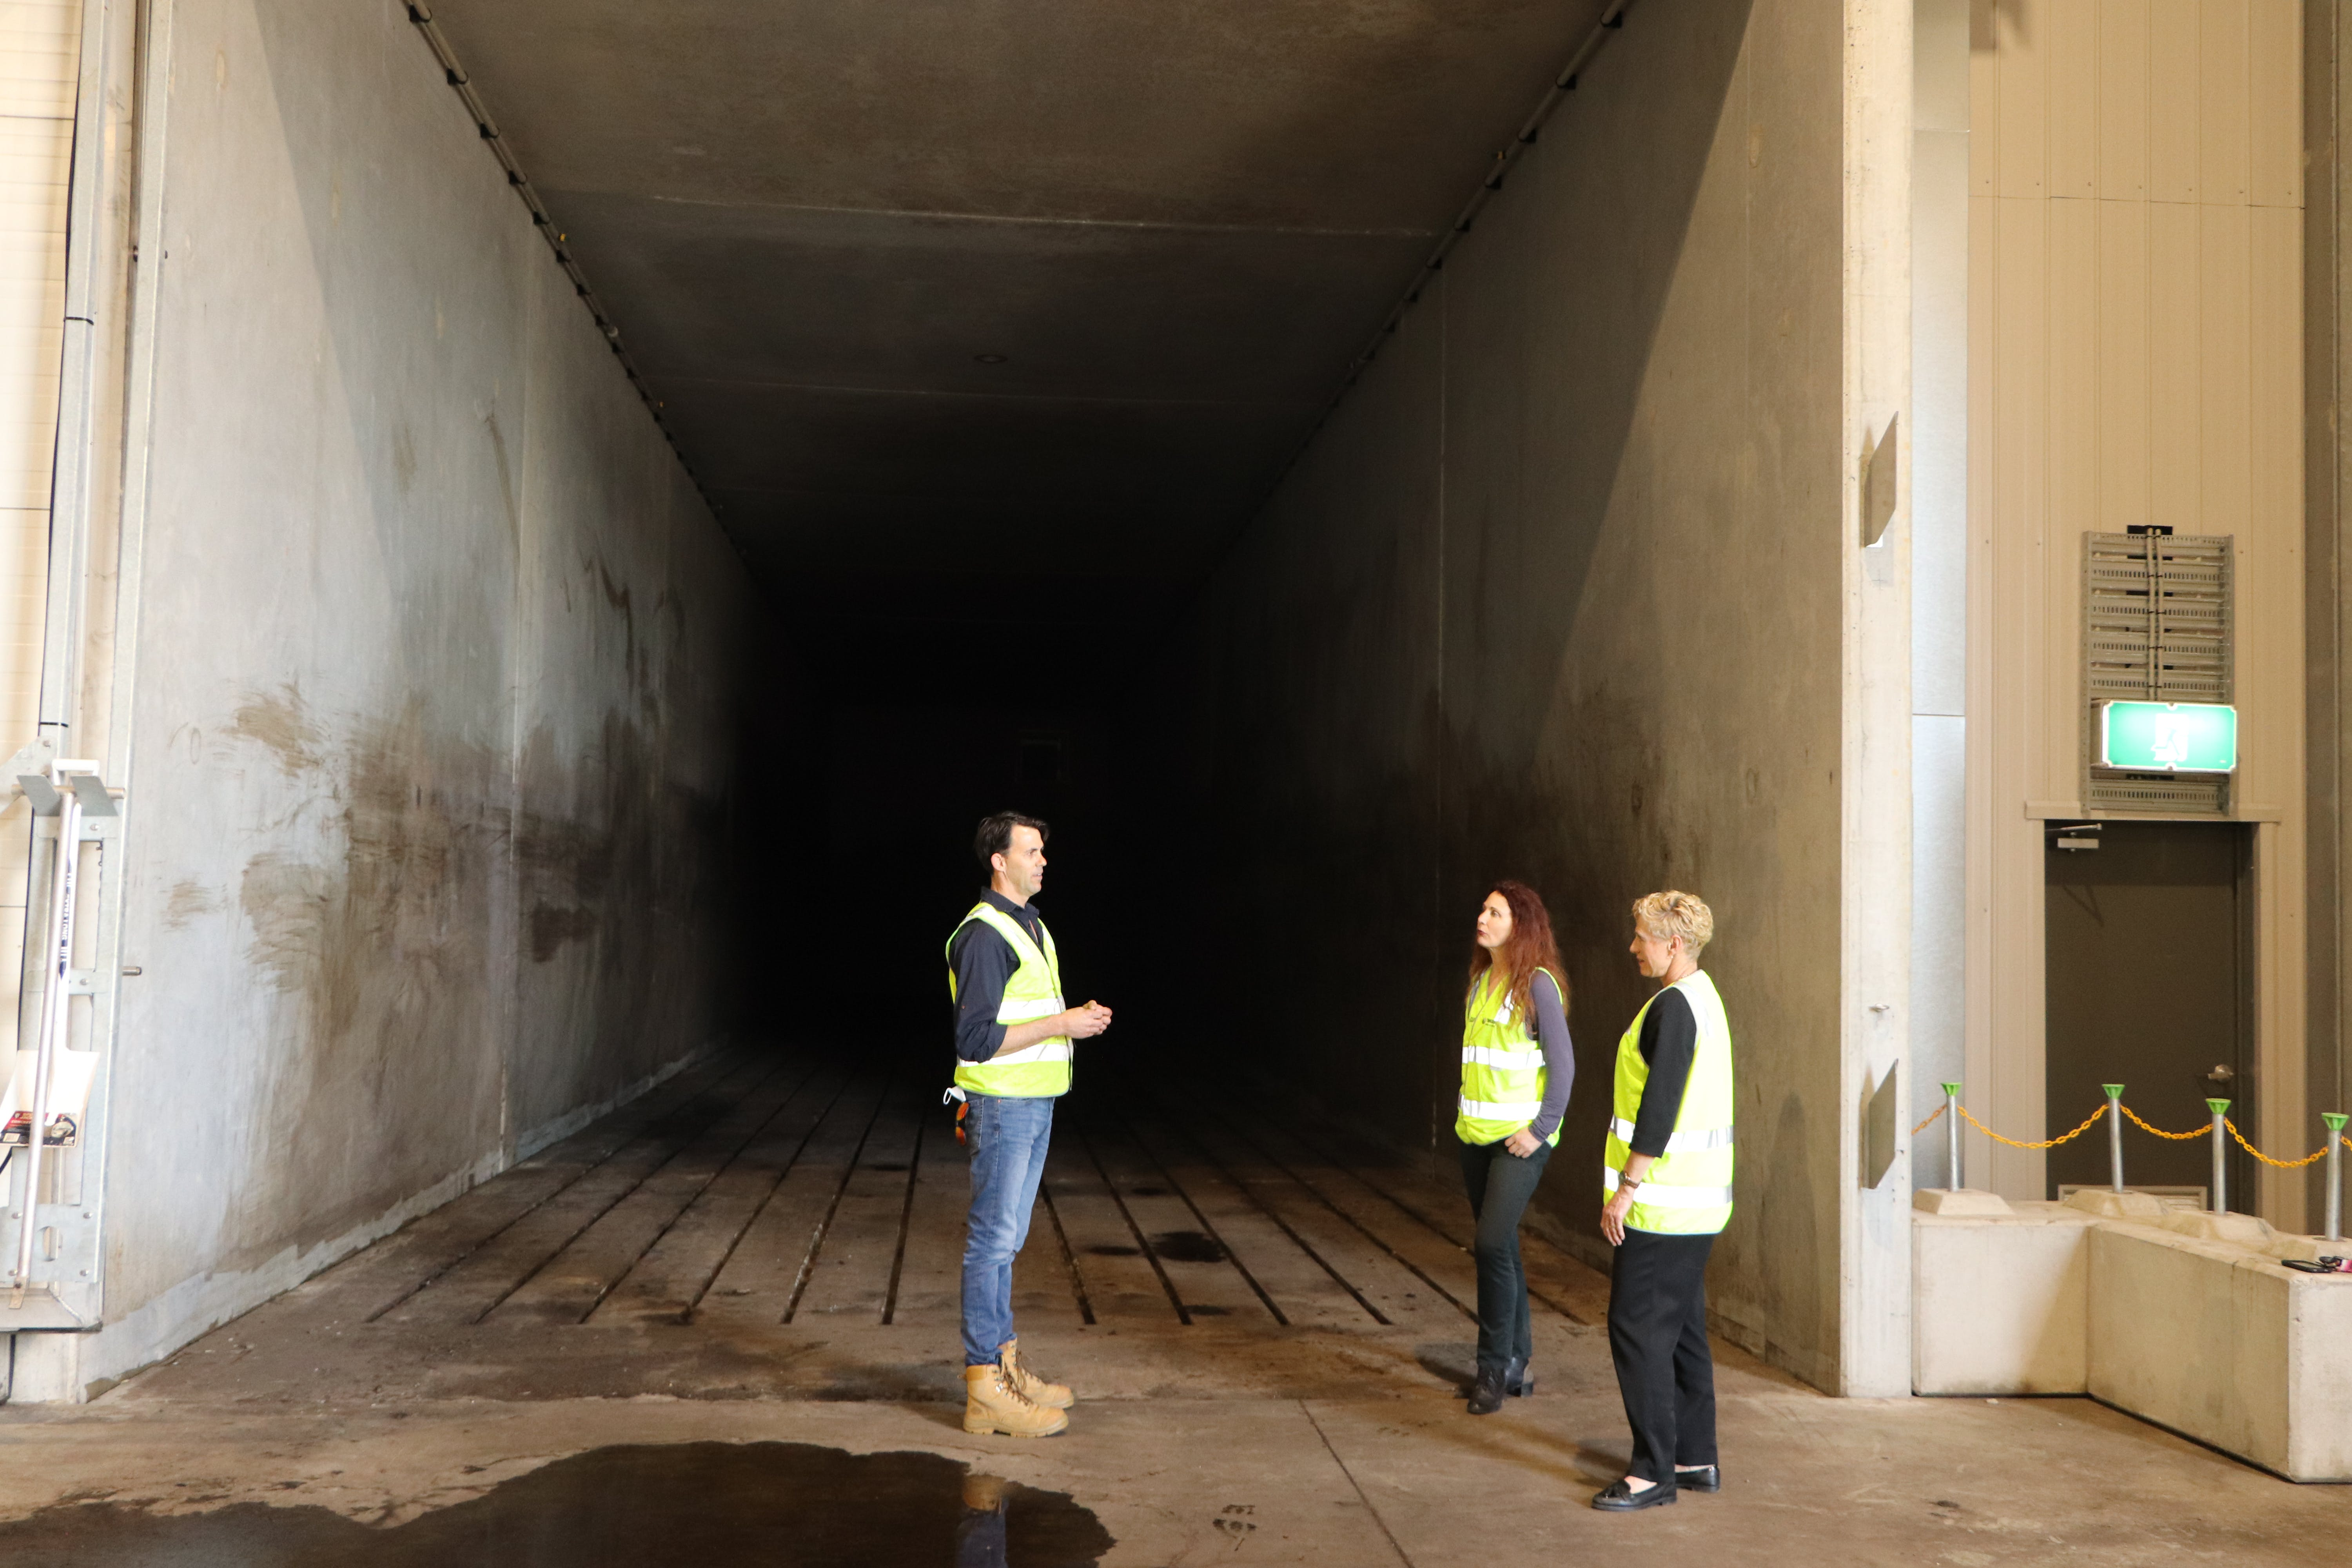 Soilco Operations Manager Mark Emery explains the organic waste drying process to Tweed Mayor Chris Cherry and Director of Sustainable Communities and Environment Tracey Stinson.